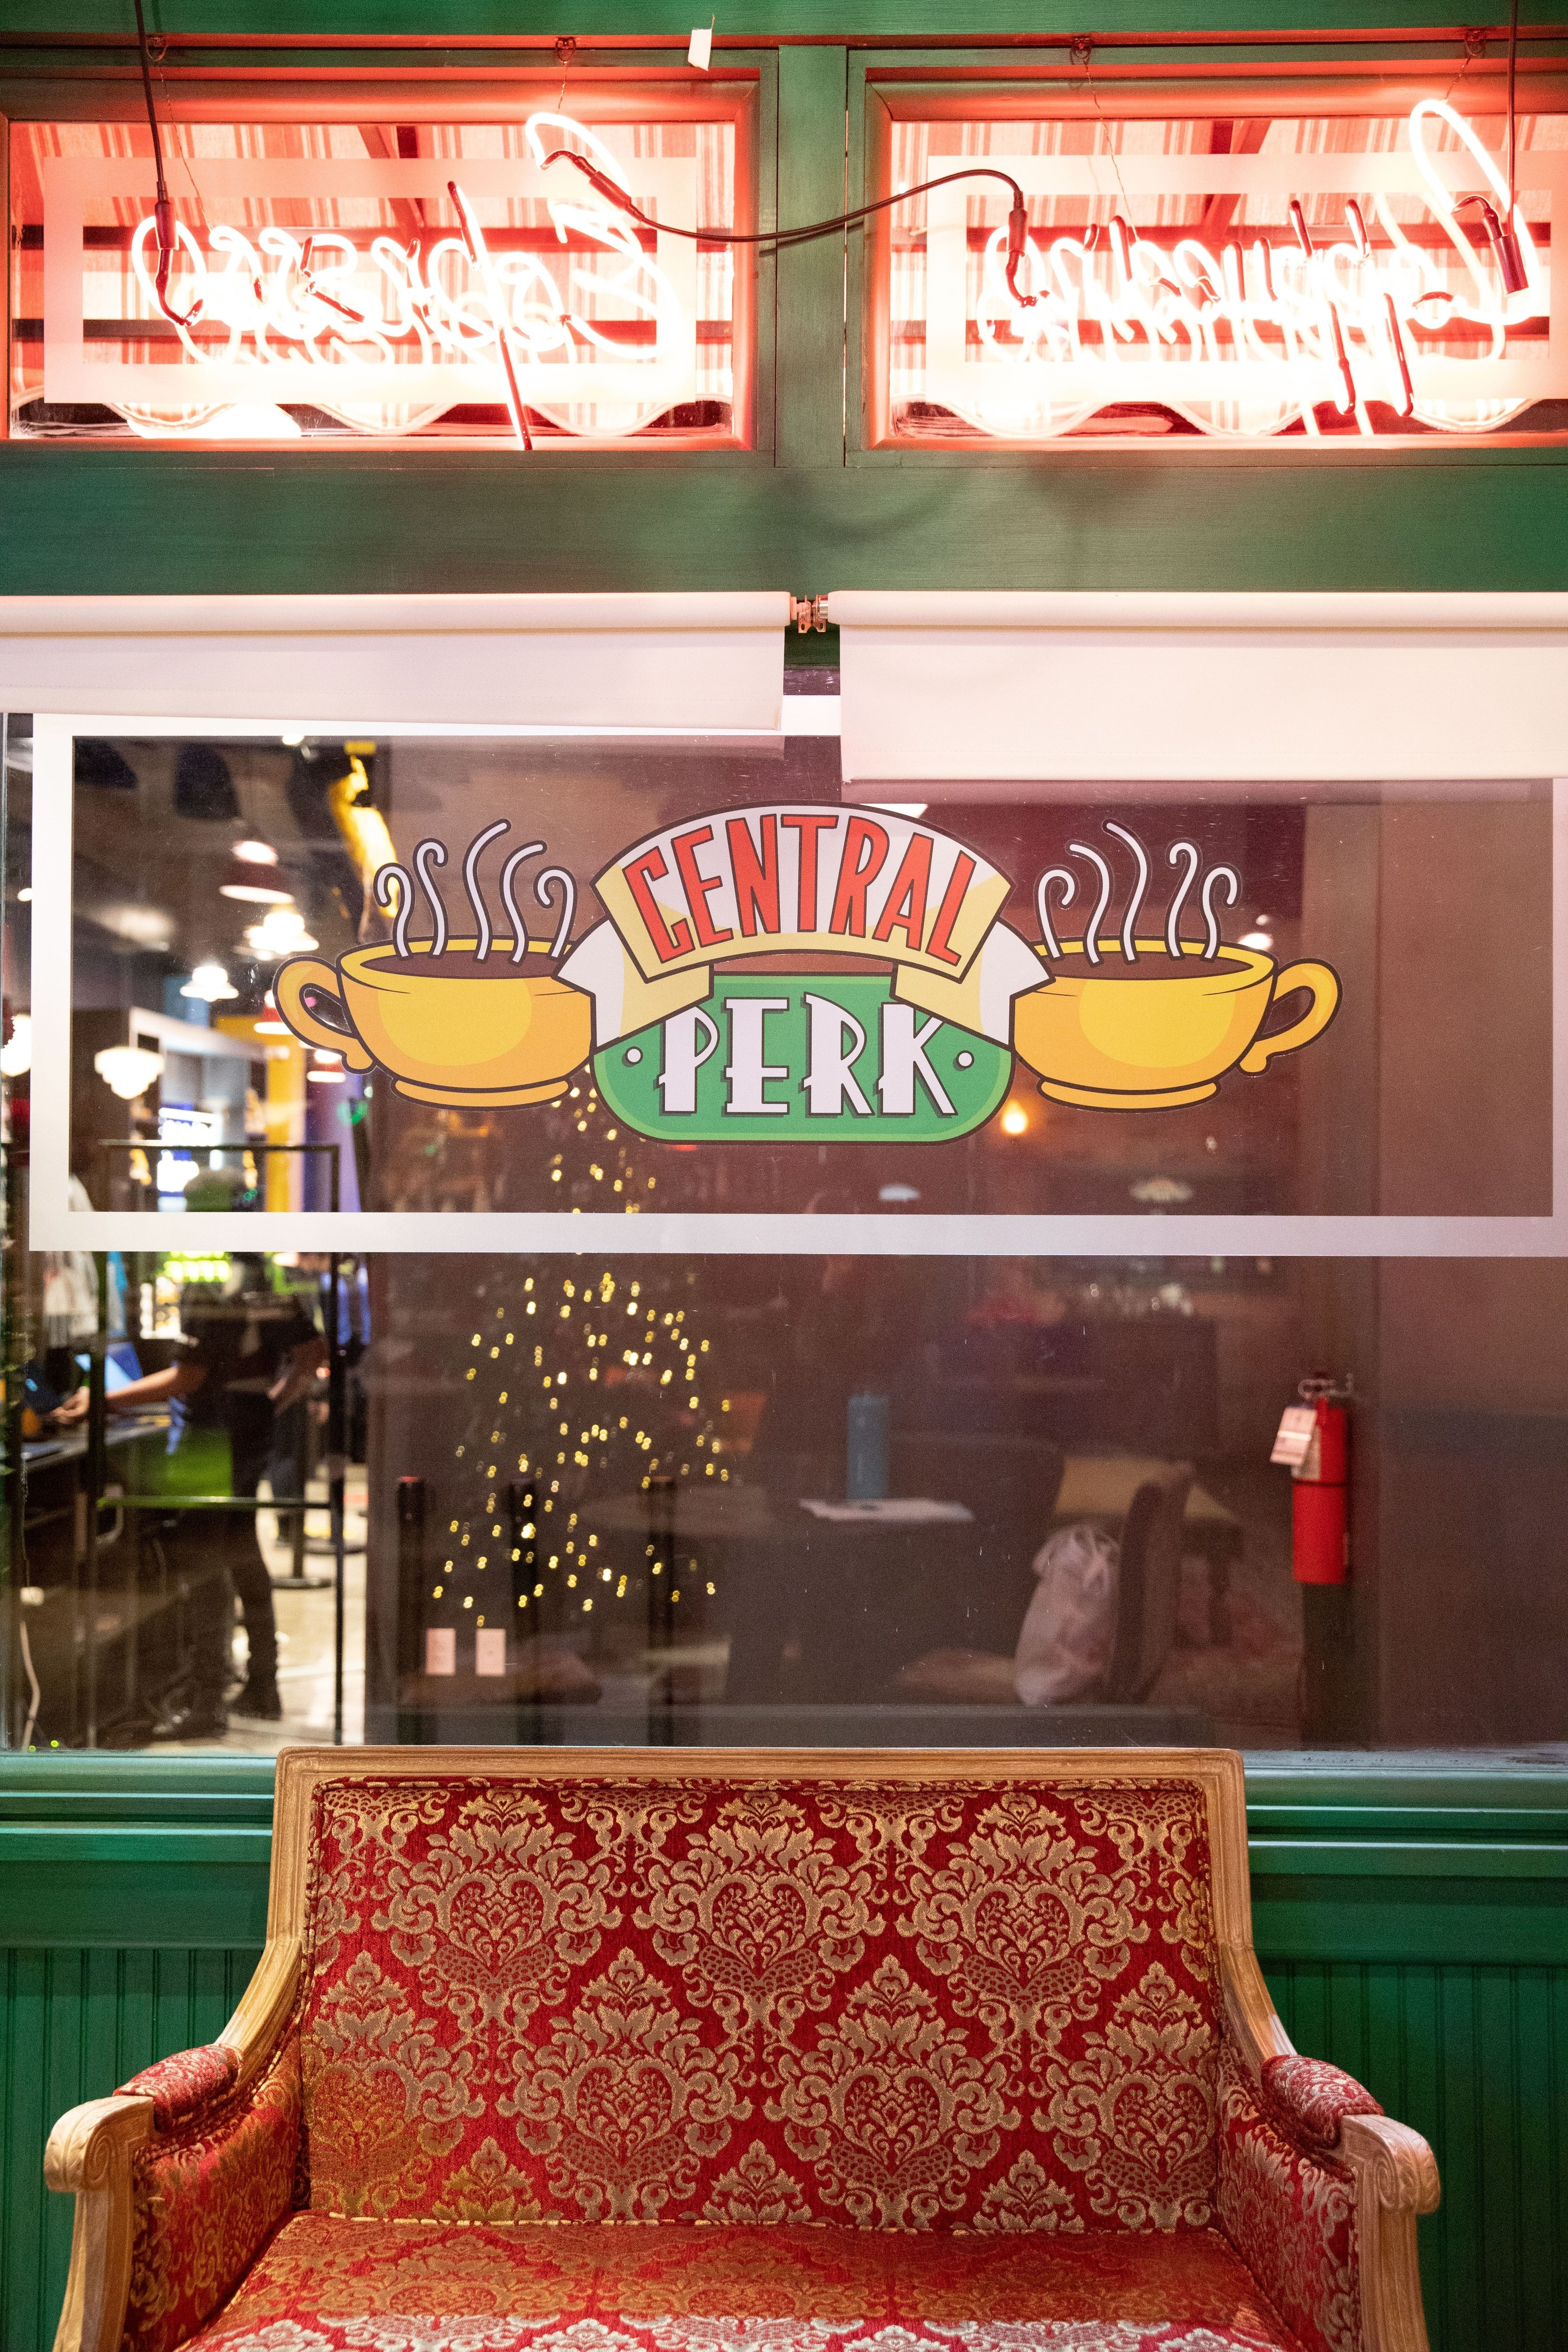 the Central Perk sign